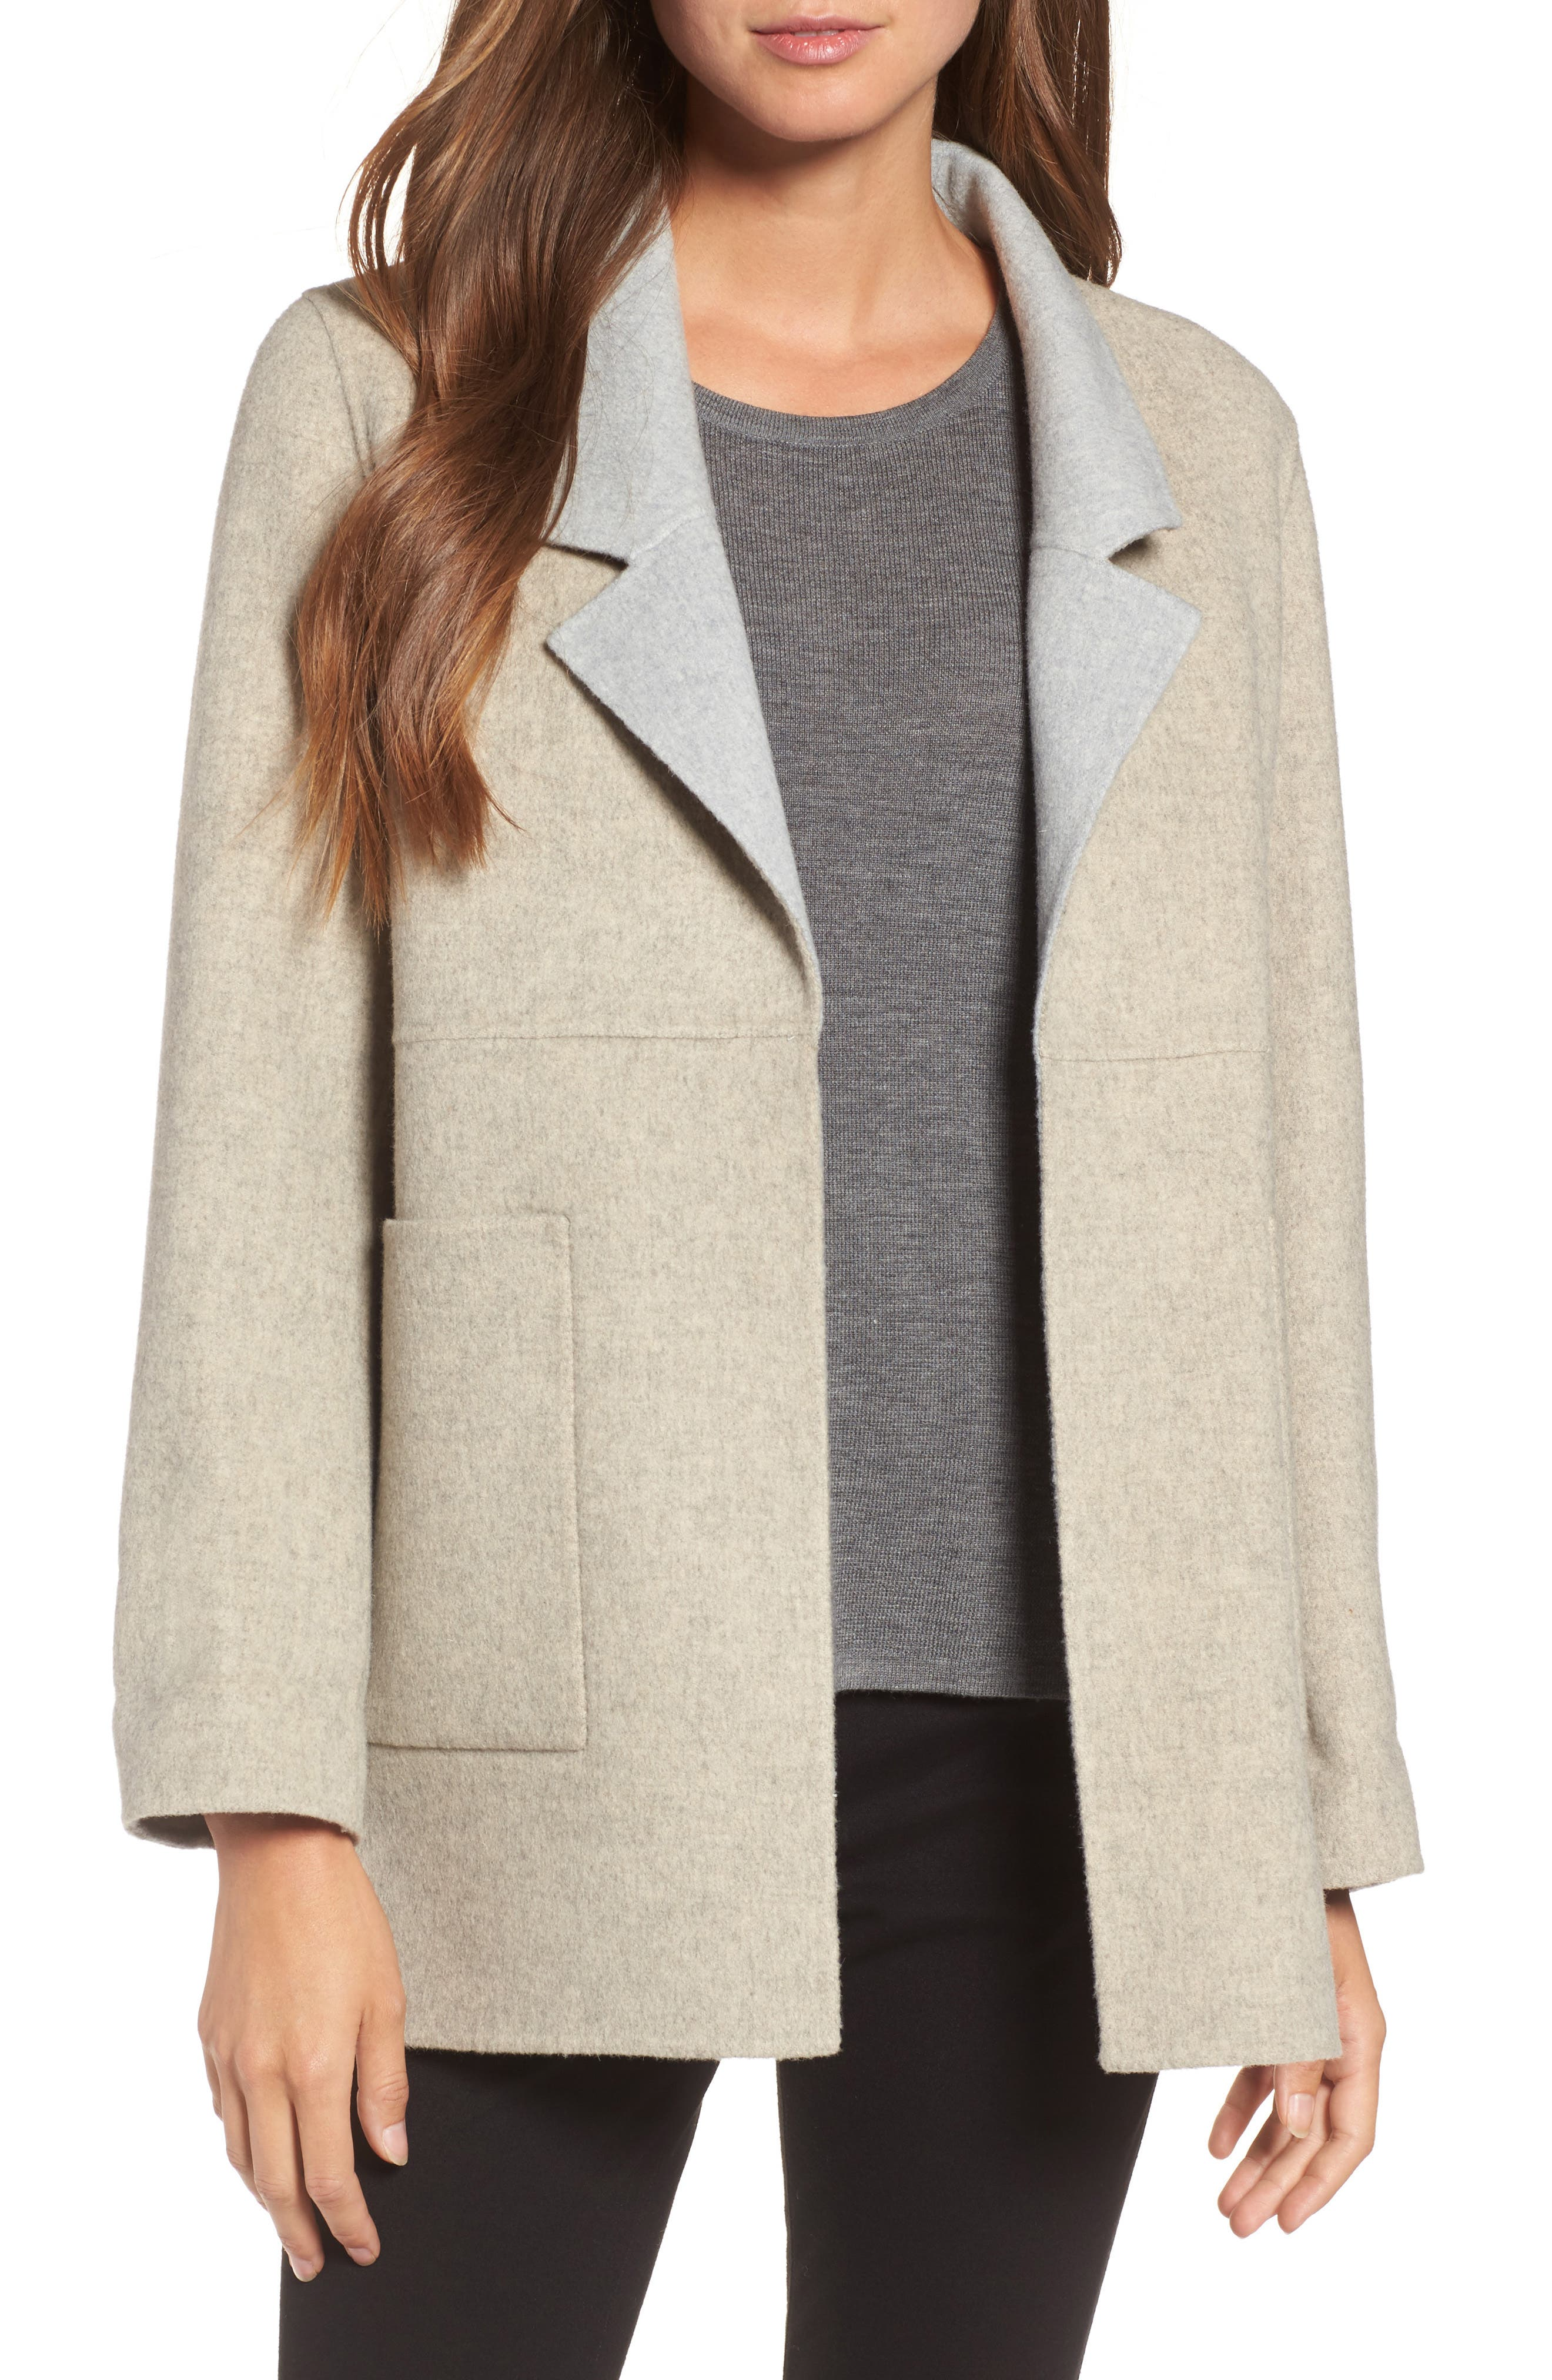 Alternate Image 1 Selected - Eileen Fisher Double Face Brushed Wool Notch Collar Jacket